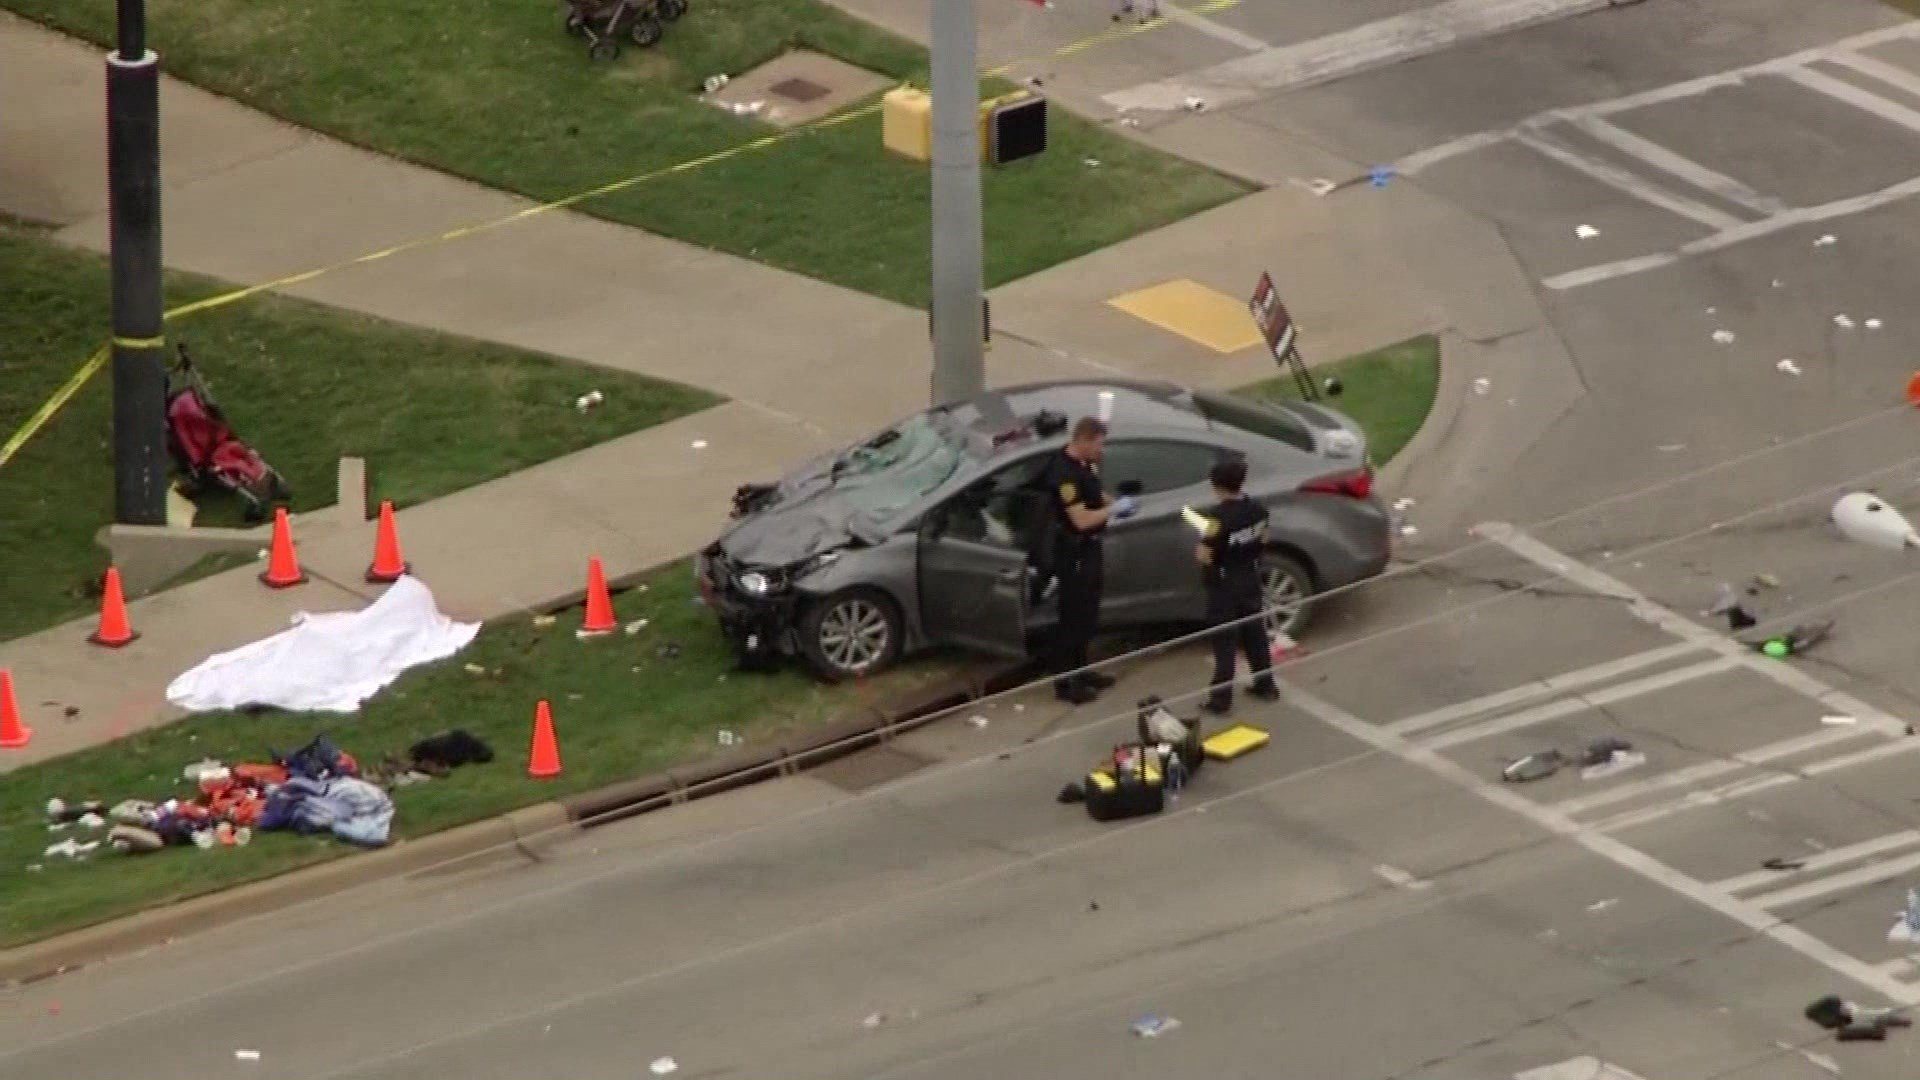 Four people were killed when a car crashed into a homecoming parade in Stillwater, Oklahoma, on October 24, 2015. (KFOR)